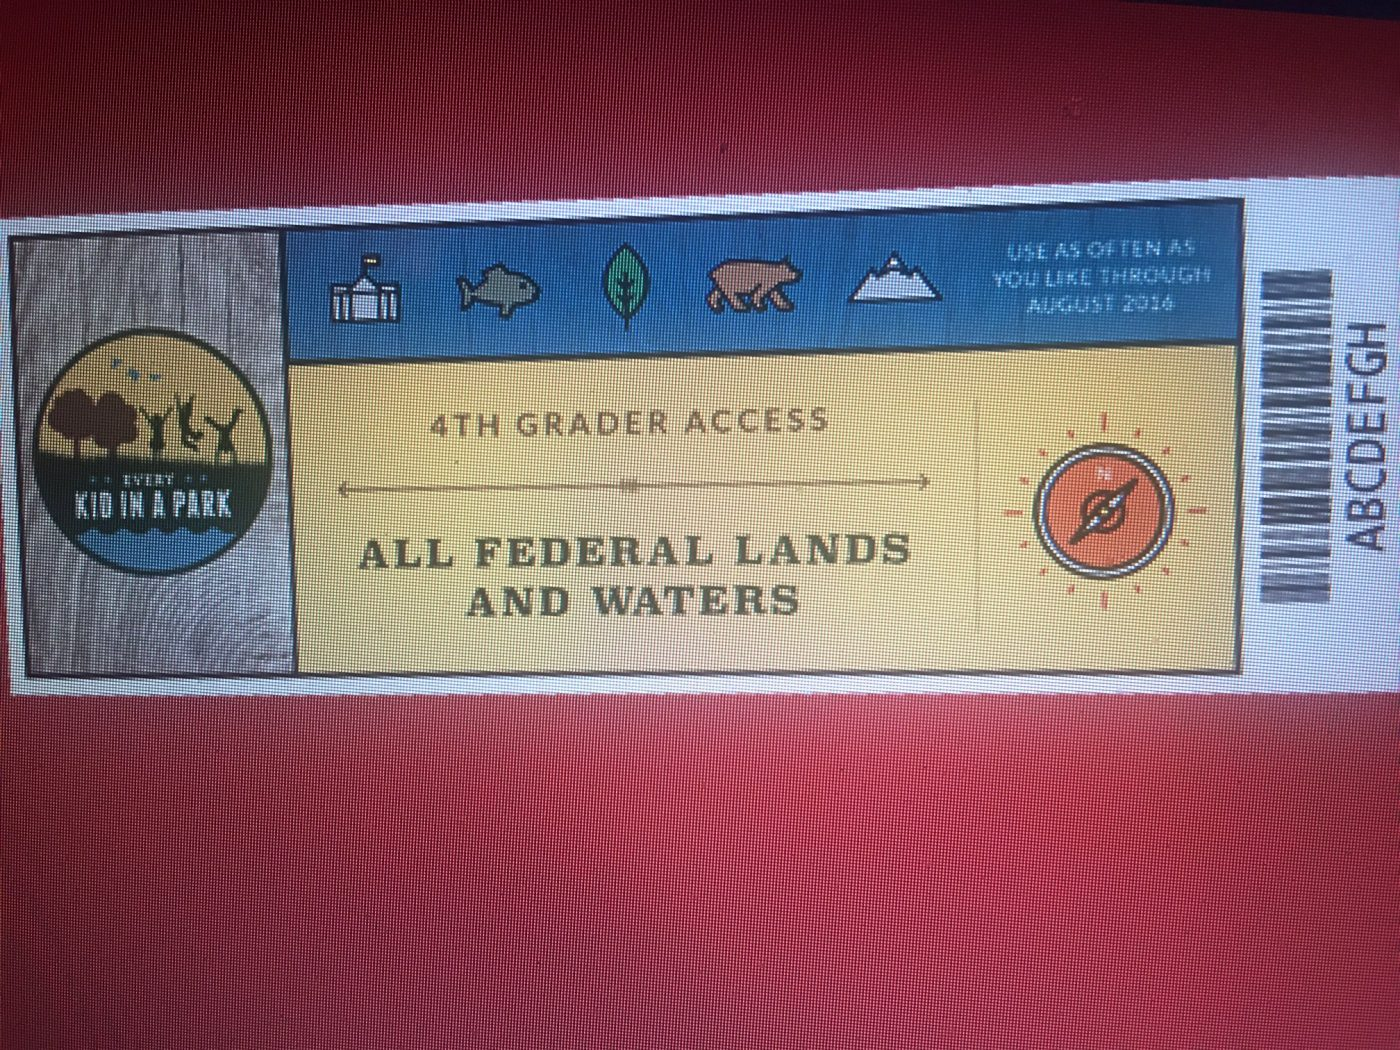 National Parks4-Free Pass